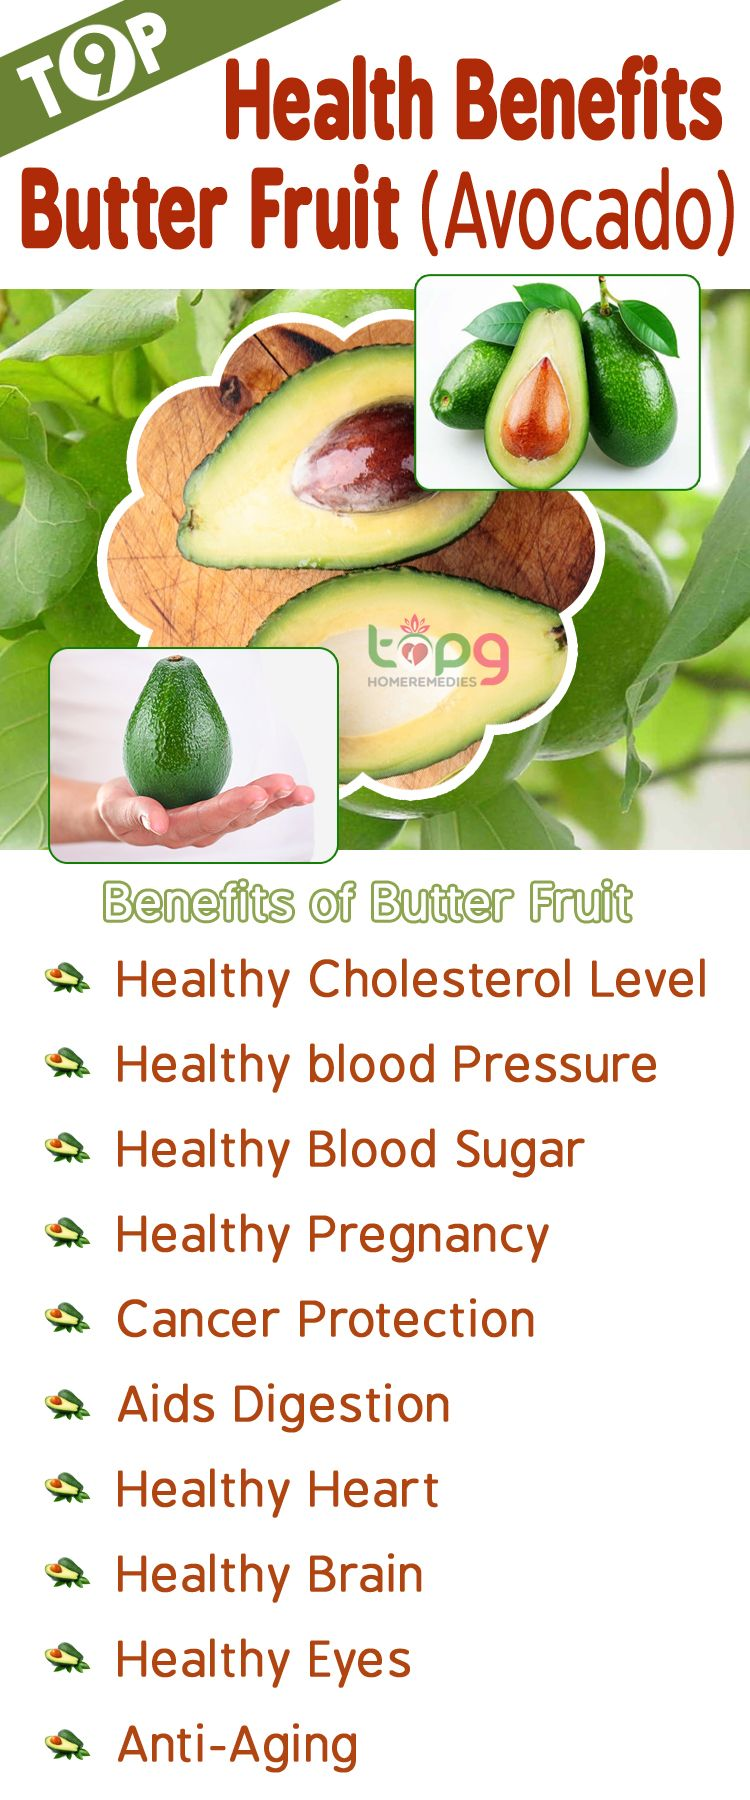 top 9 butter fruit (avocado) health benefits.. (with images